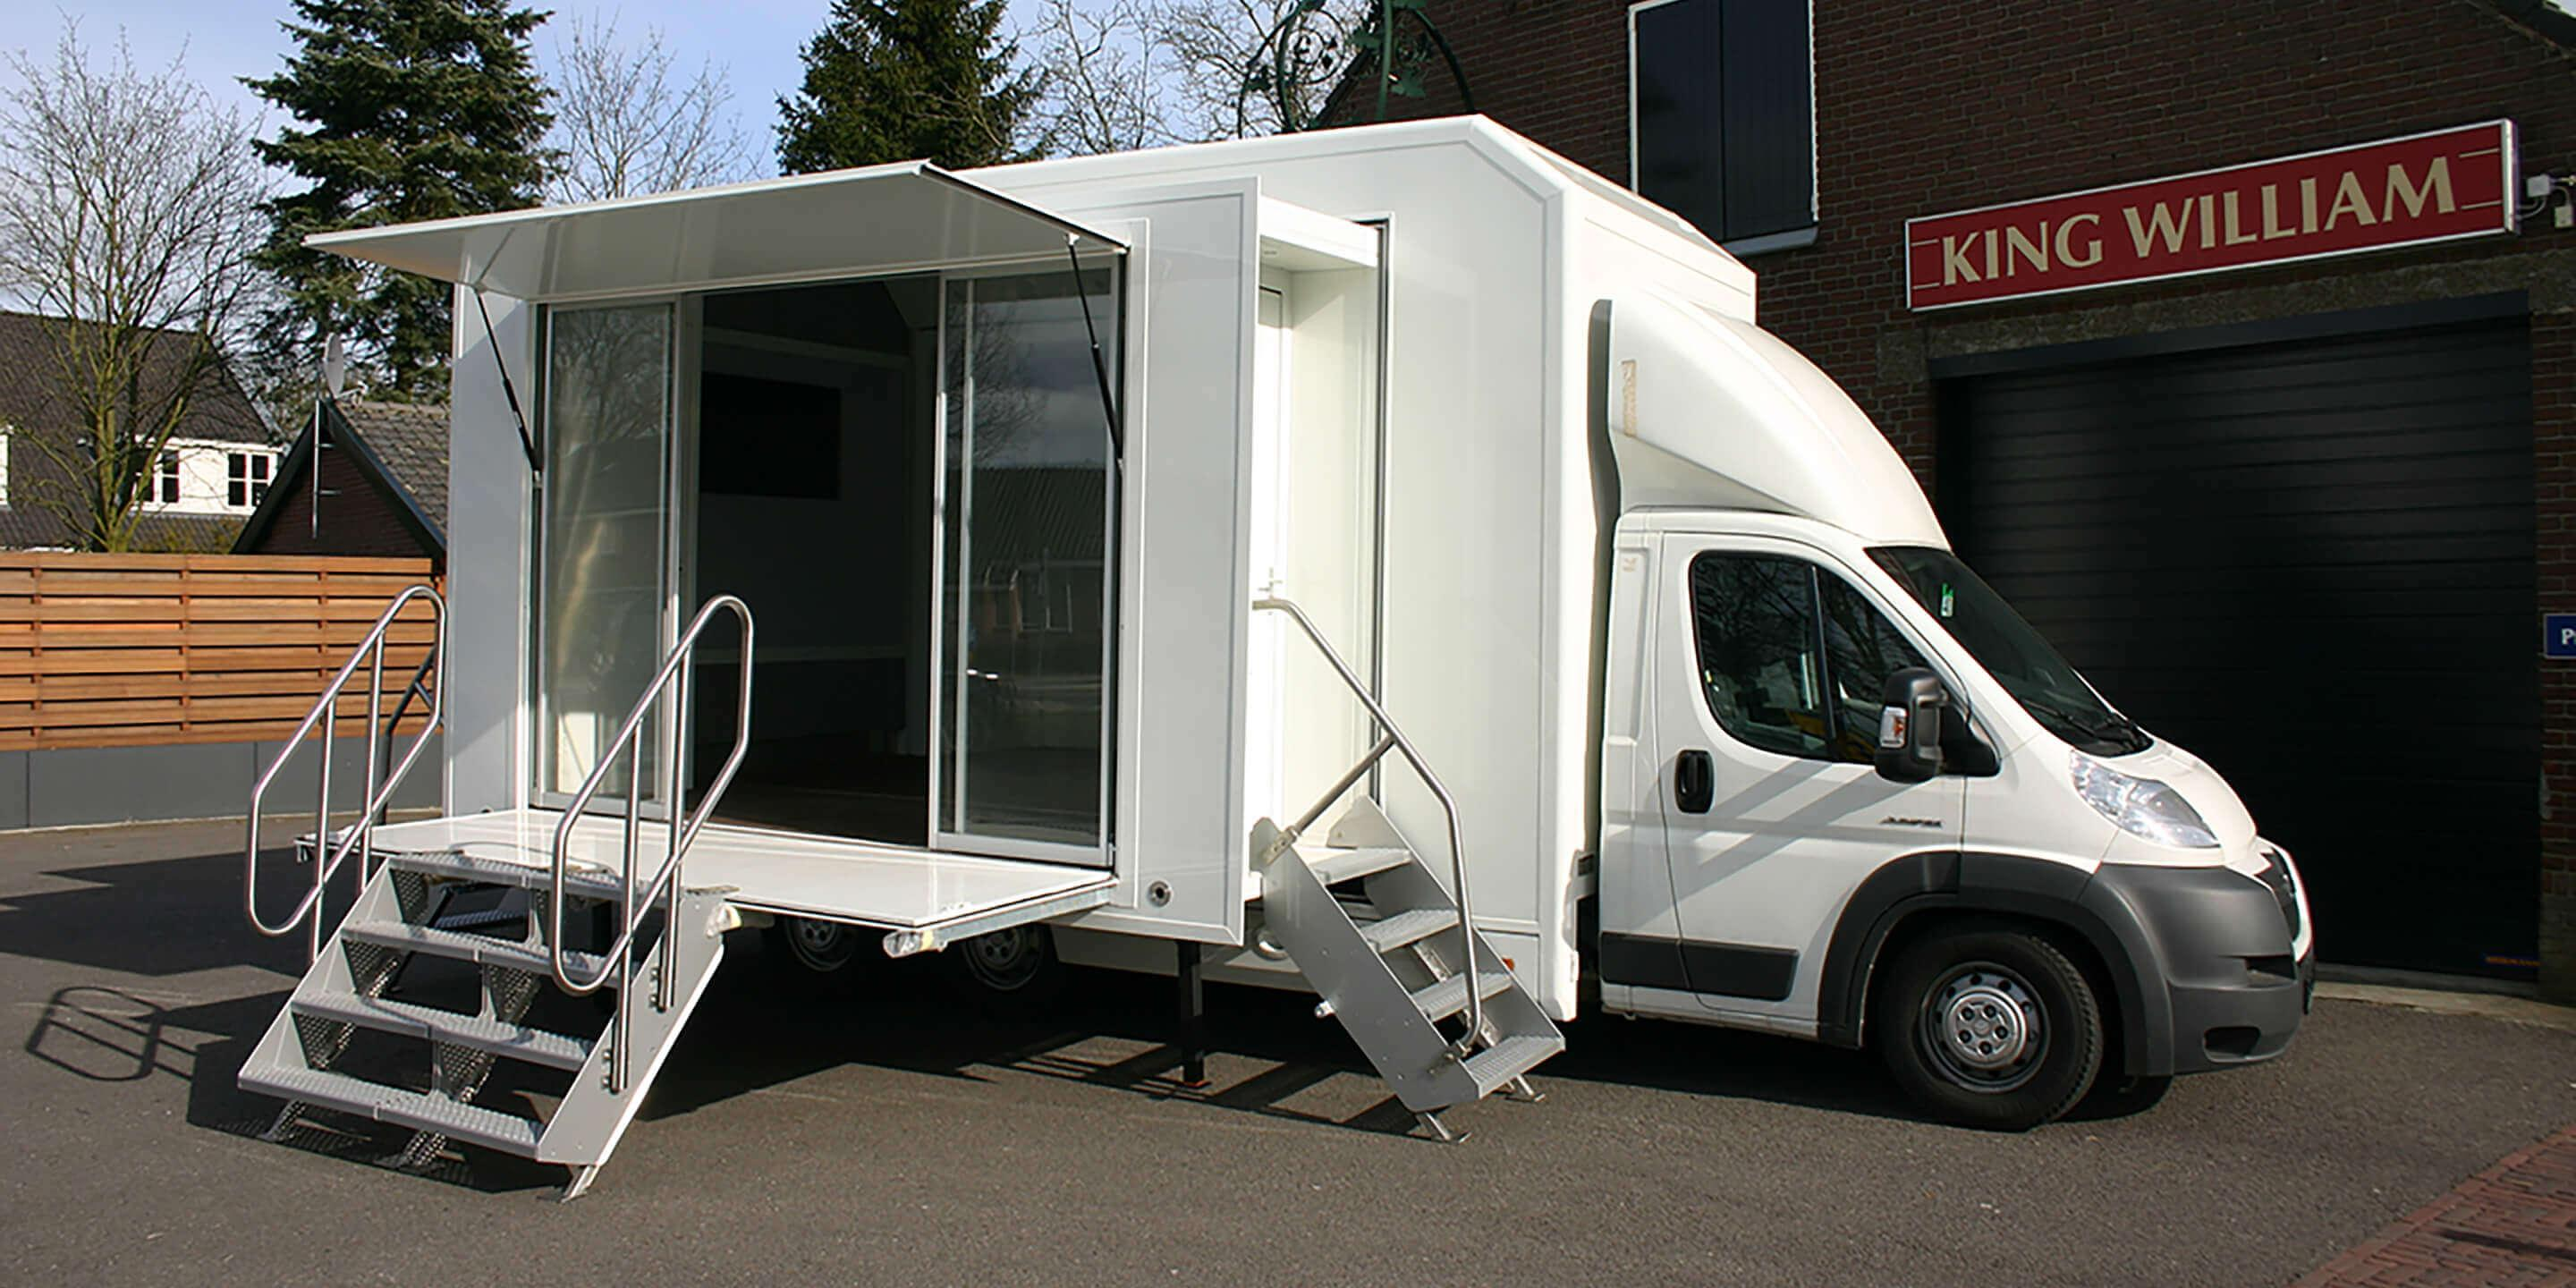 Exhibition Trailers: Relay Promotional Vehicle